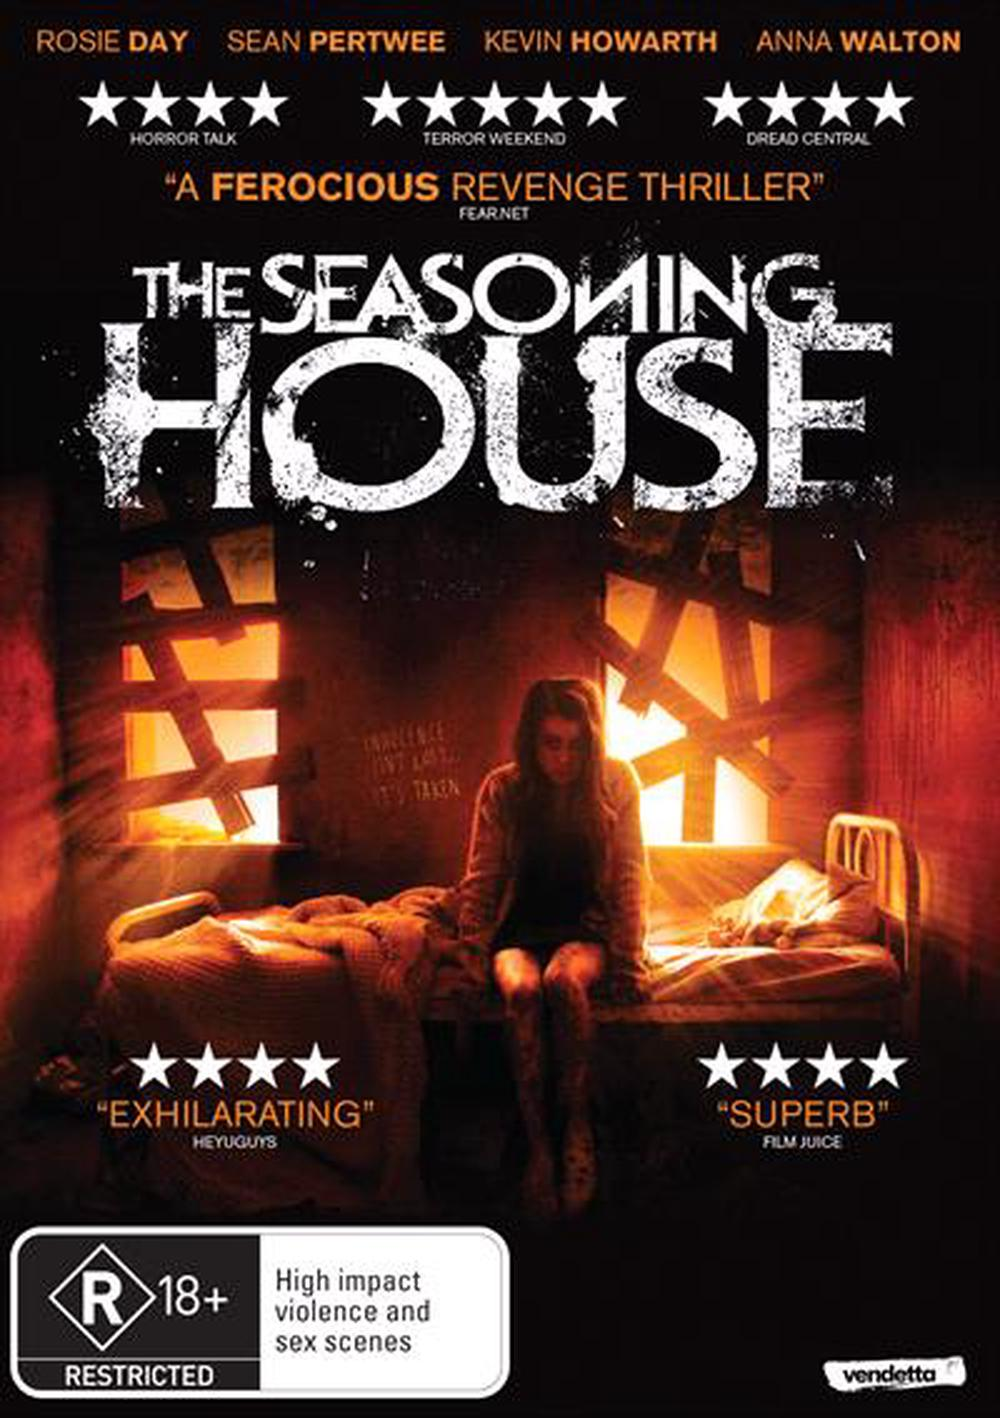 Seasoning House, The